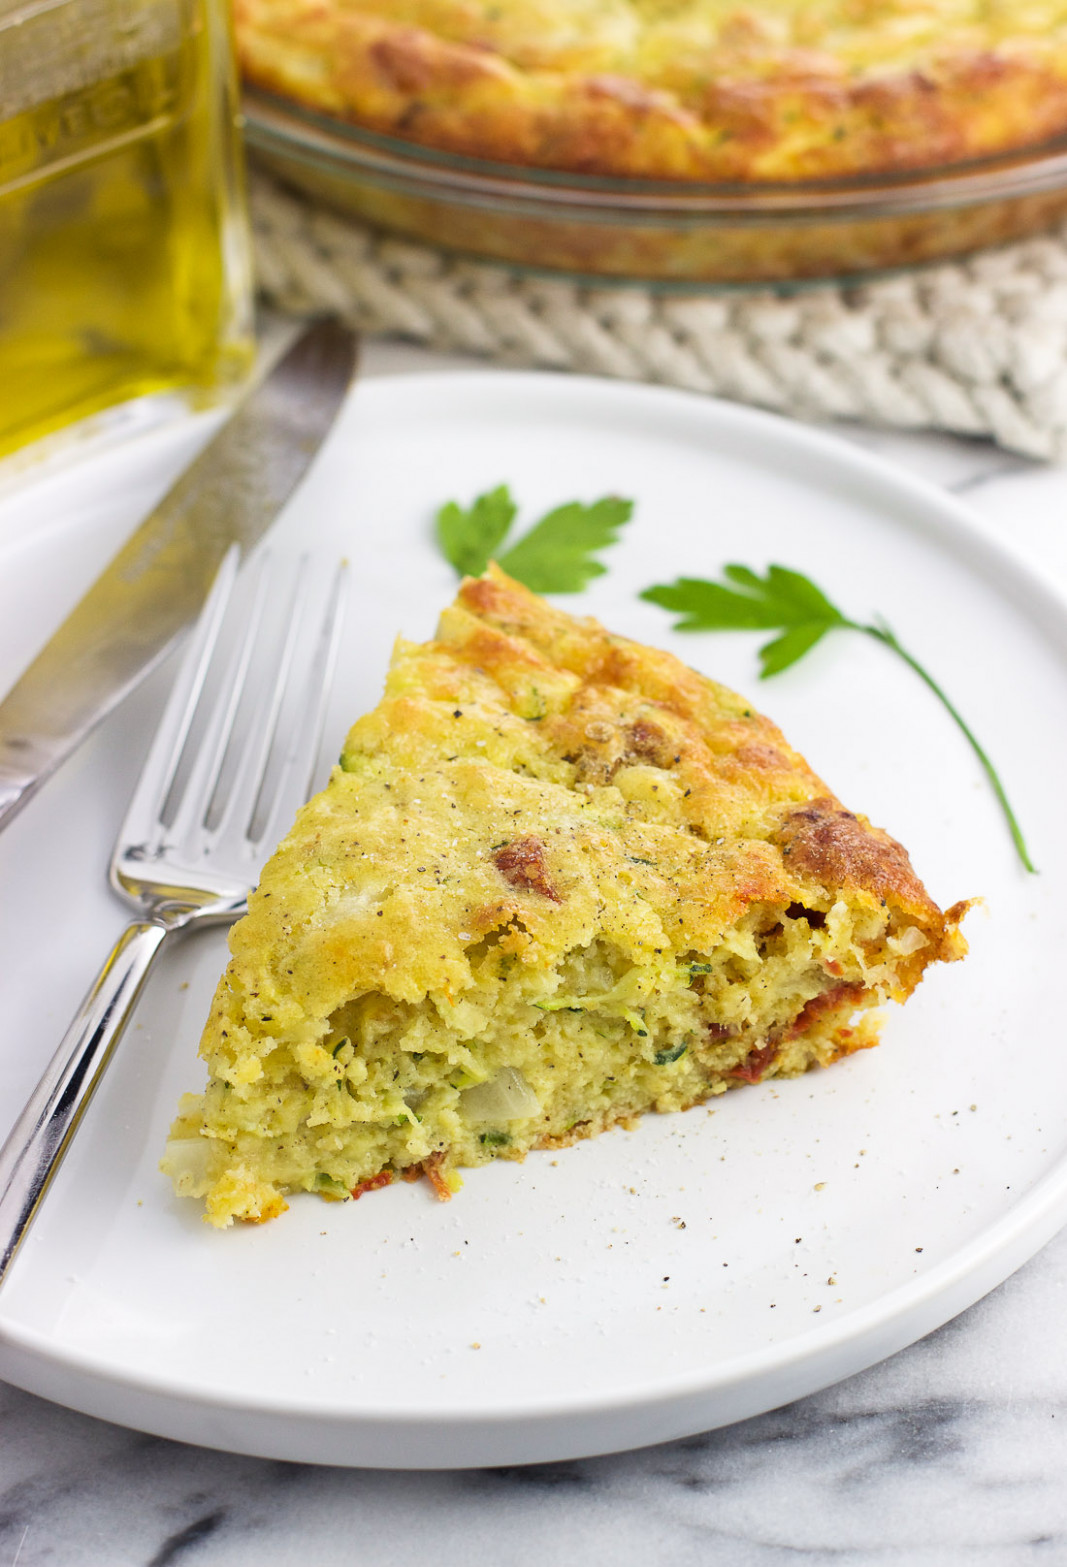 Crustless Zucchini Quiche with Tomatoes and Smoked Mozzarella